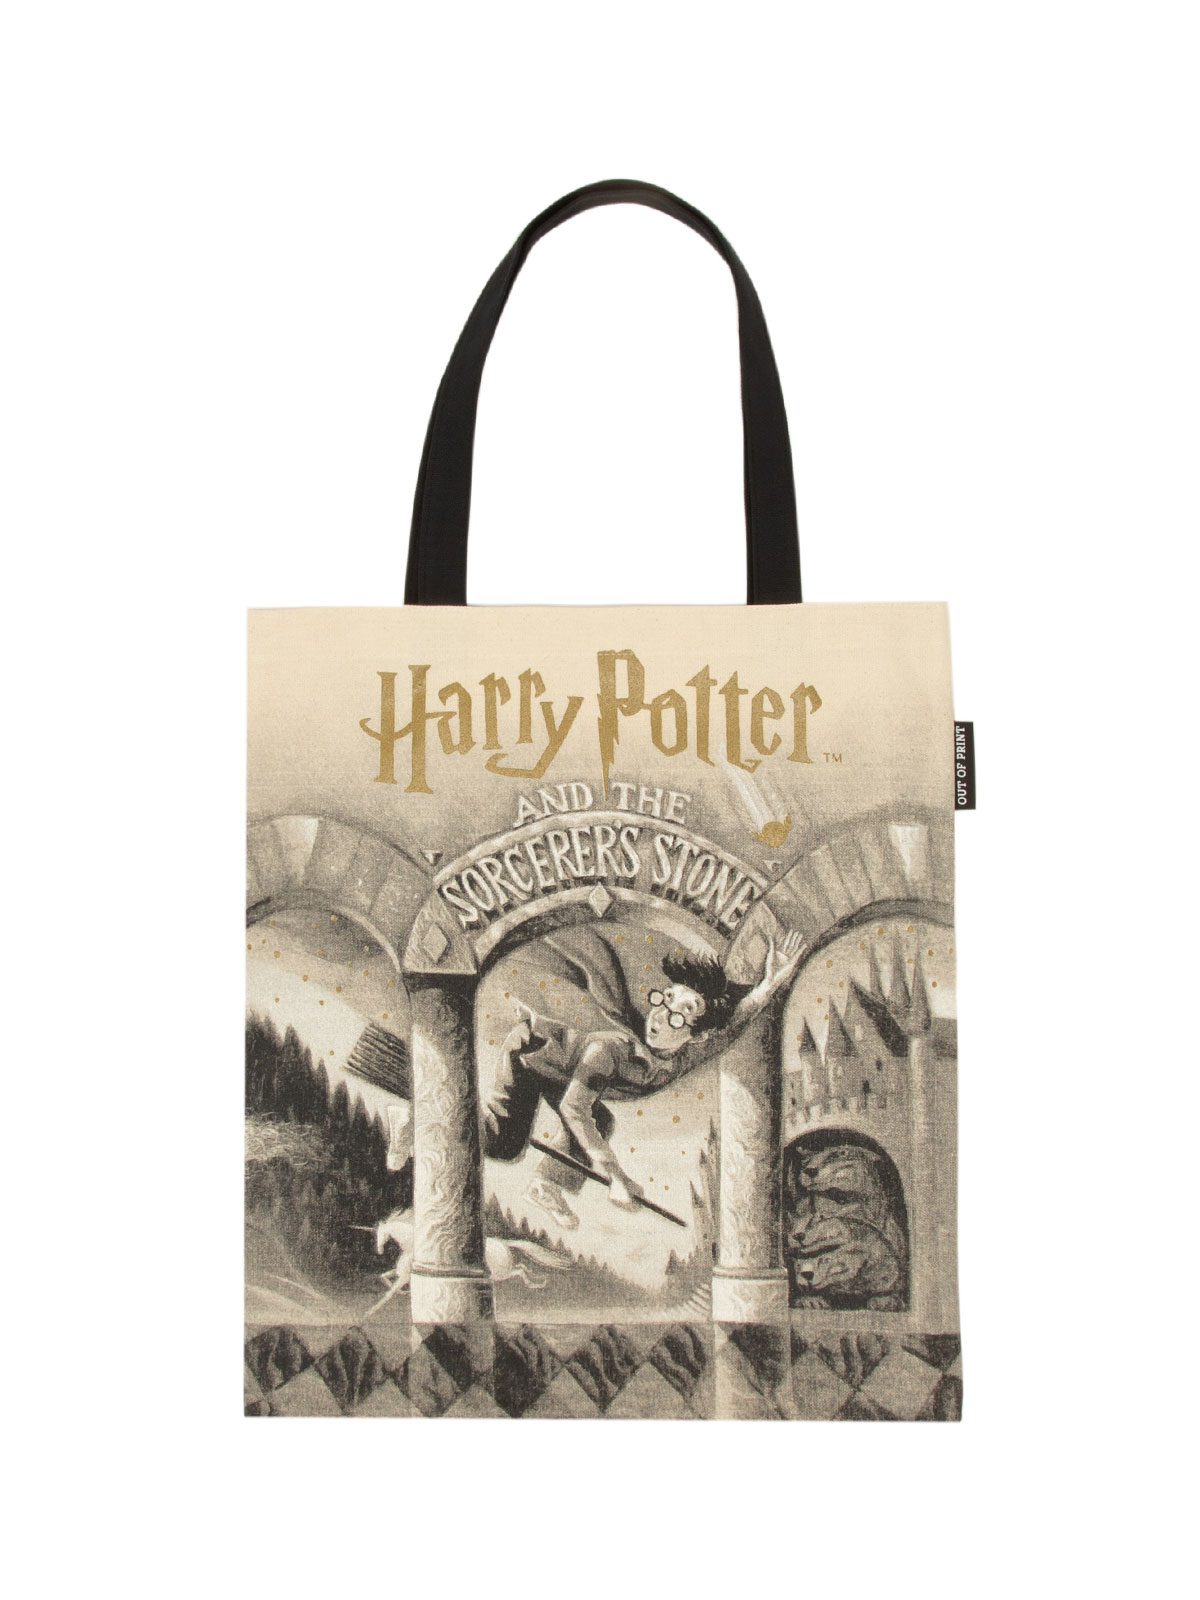 Harry Potter & the Sorcerer's Stone Out Of Print Book Cover Canvas Tote Bag